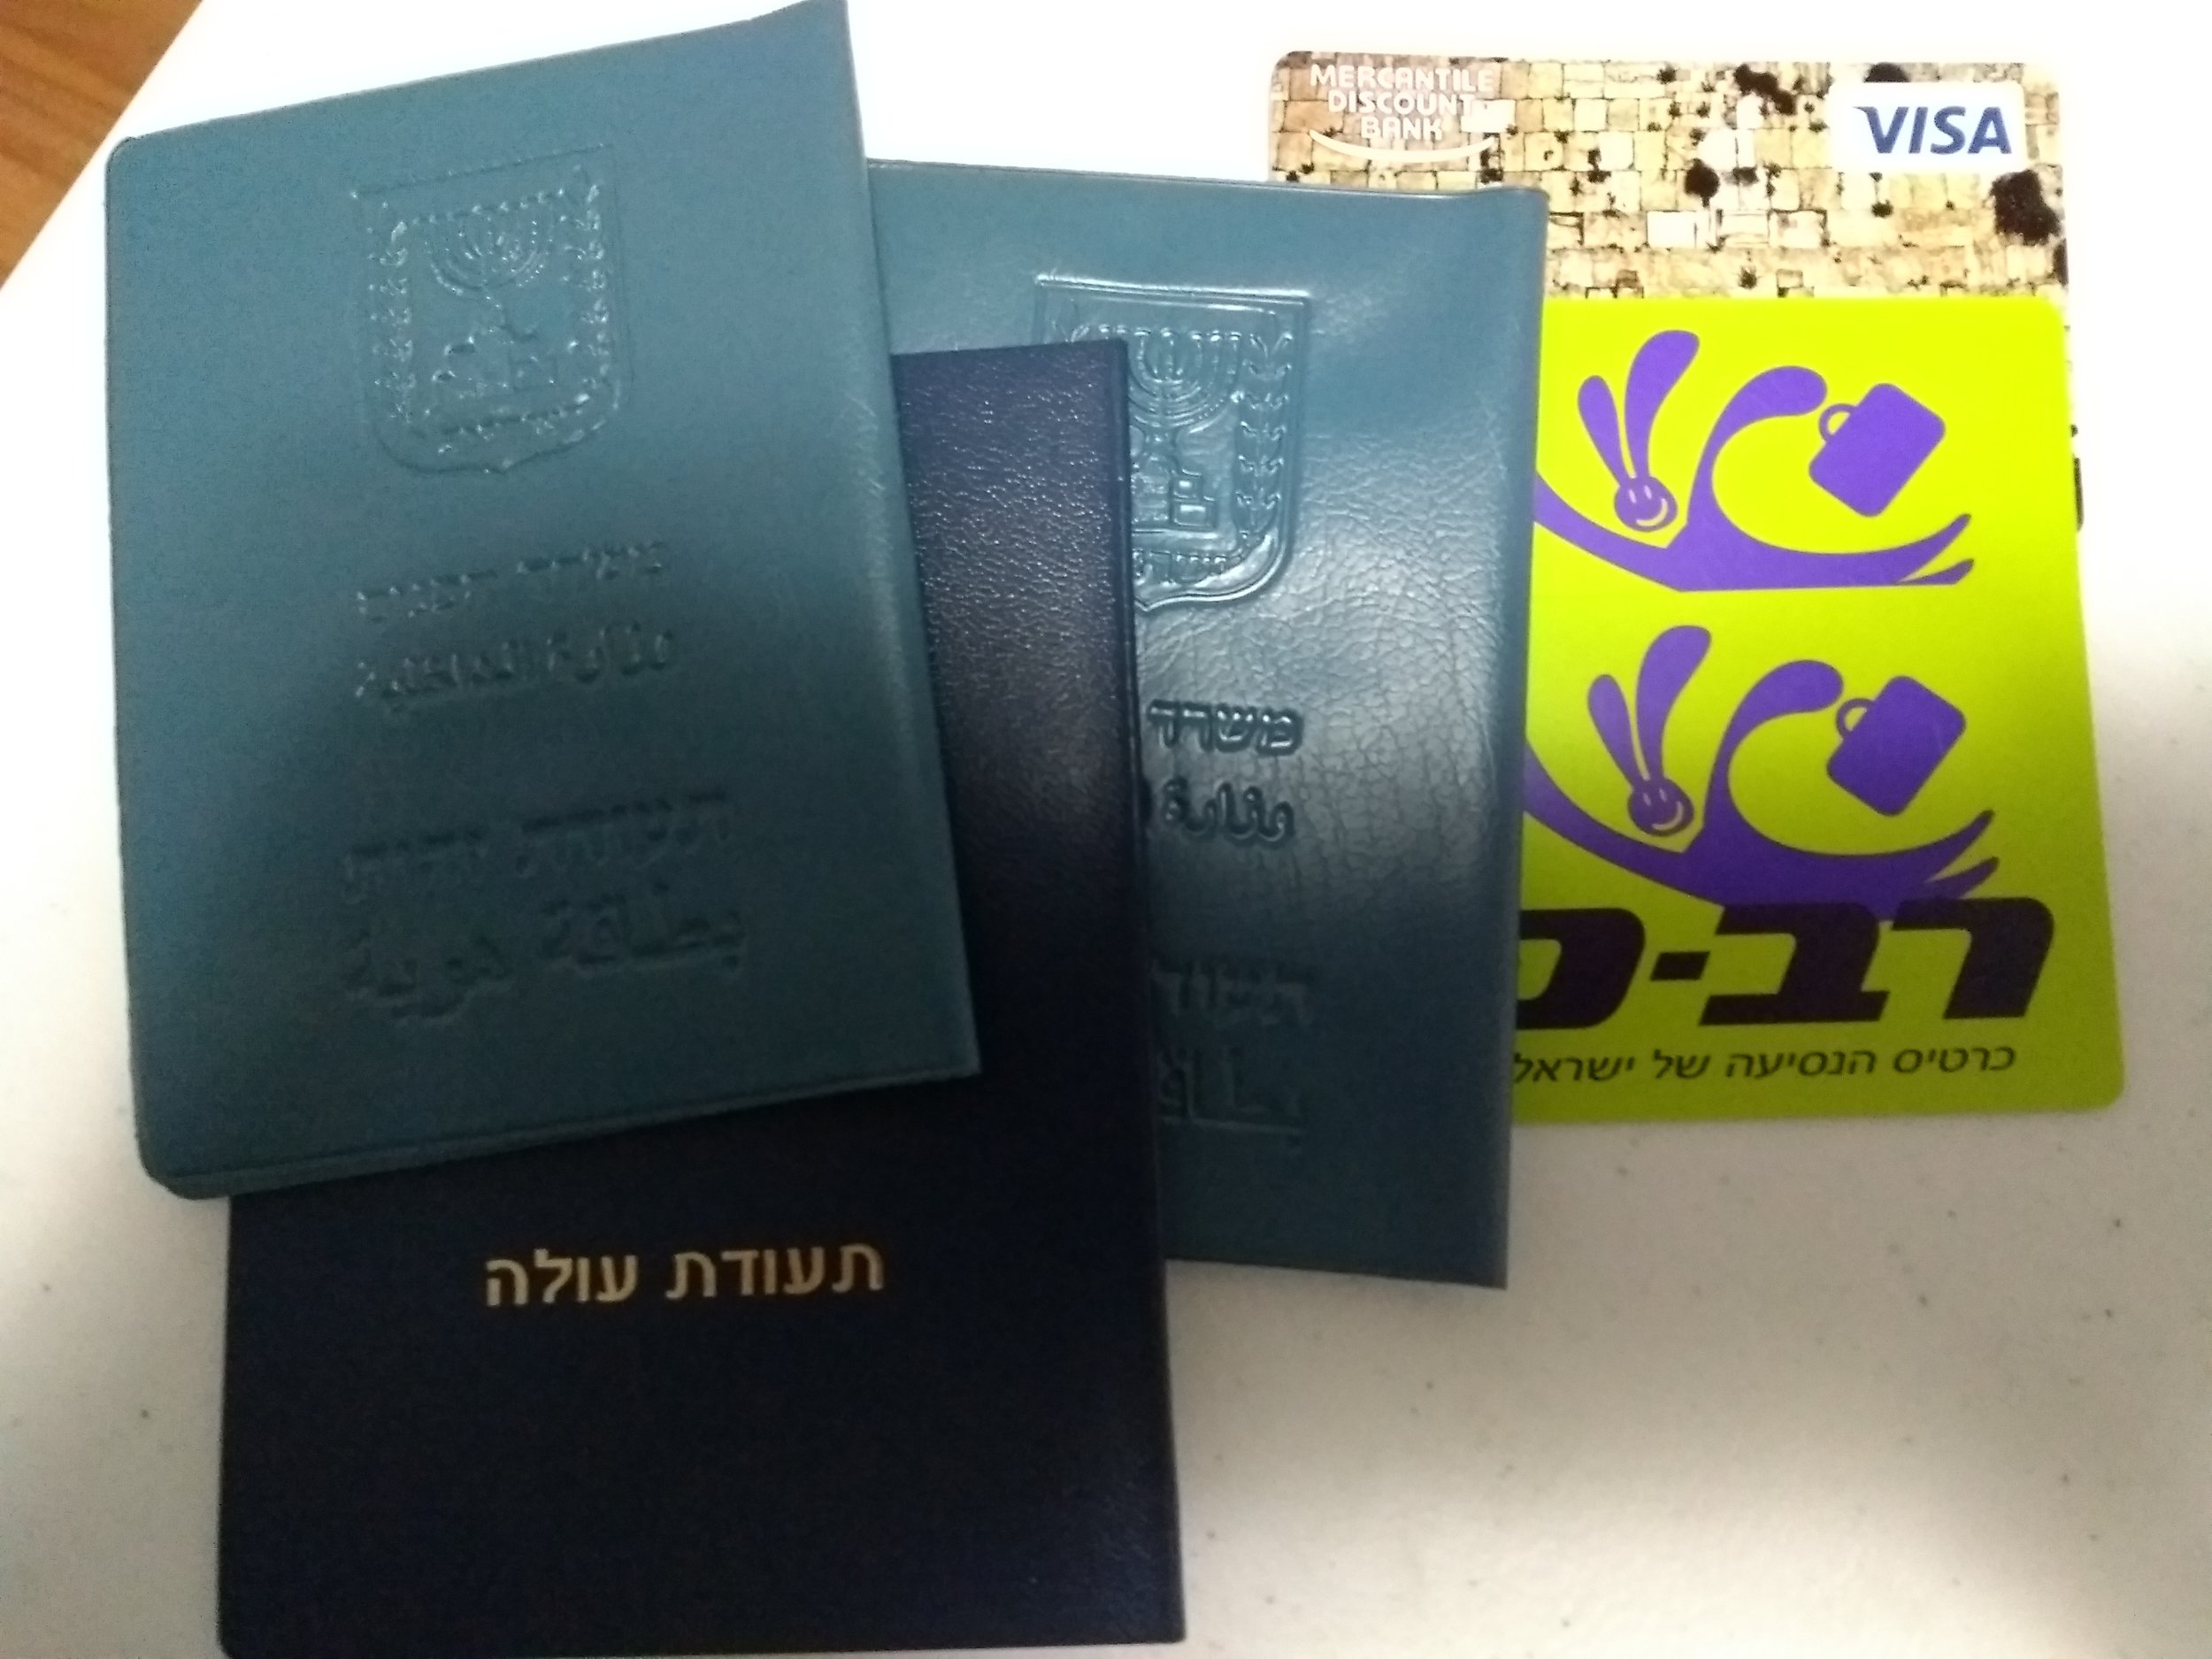 Our Tehudat Zehuts, Tehudat Oleh, Kotel 😁credit card, and Rav Kav cards